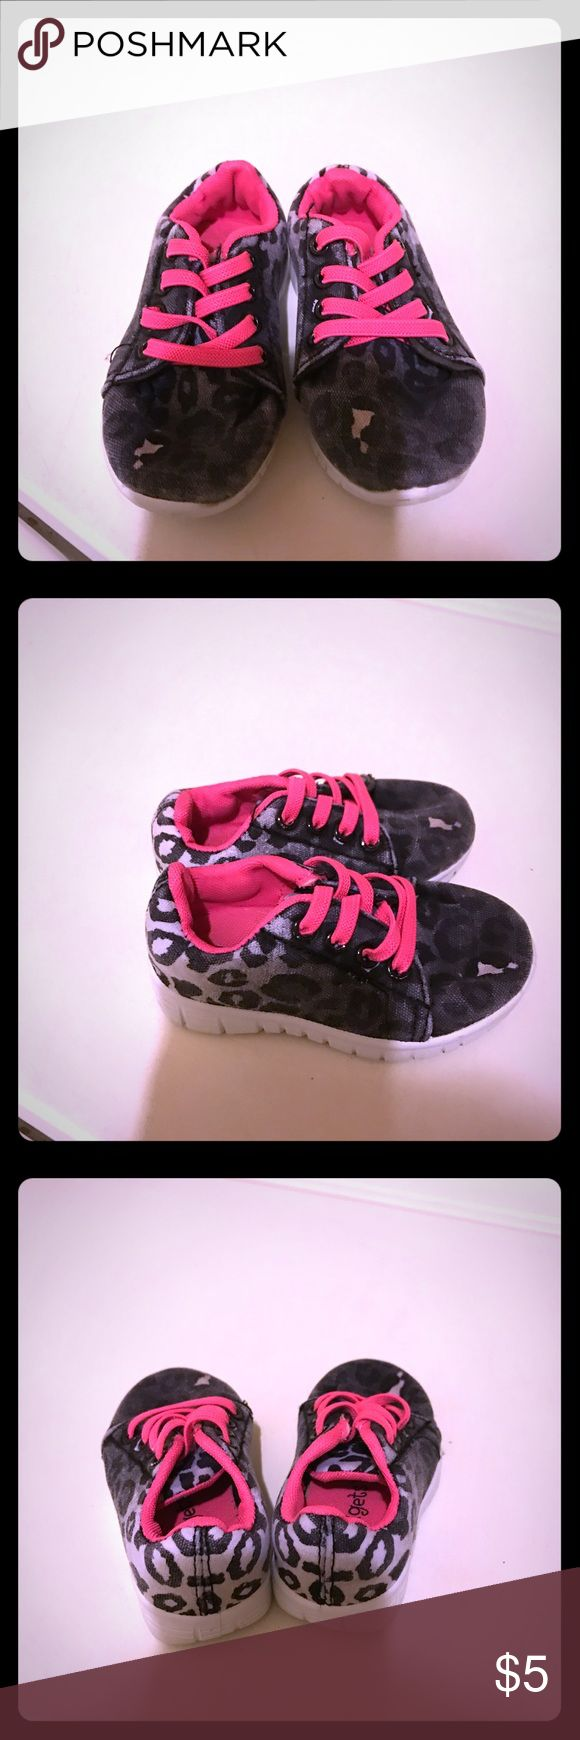 Cutest black, white, and hot pink cheetah shoes Cutest black, white, and hot pink cheetah print shoes infant/baby hard bottom size 5C kidget Shoes